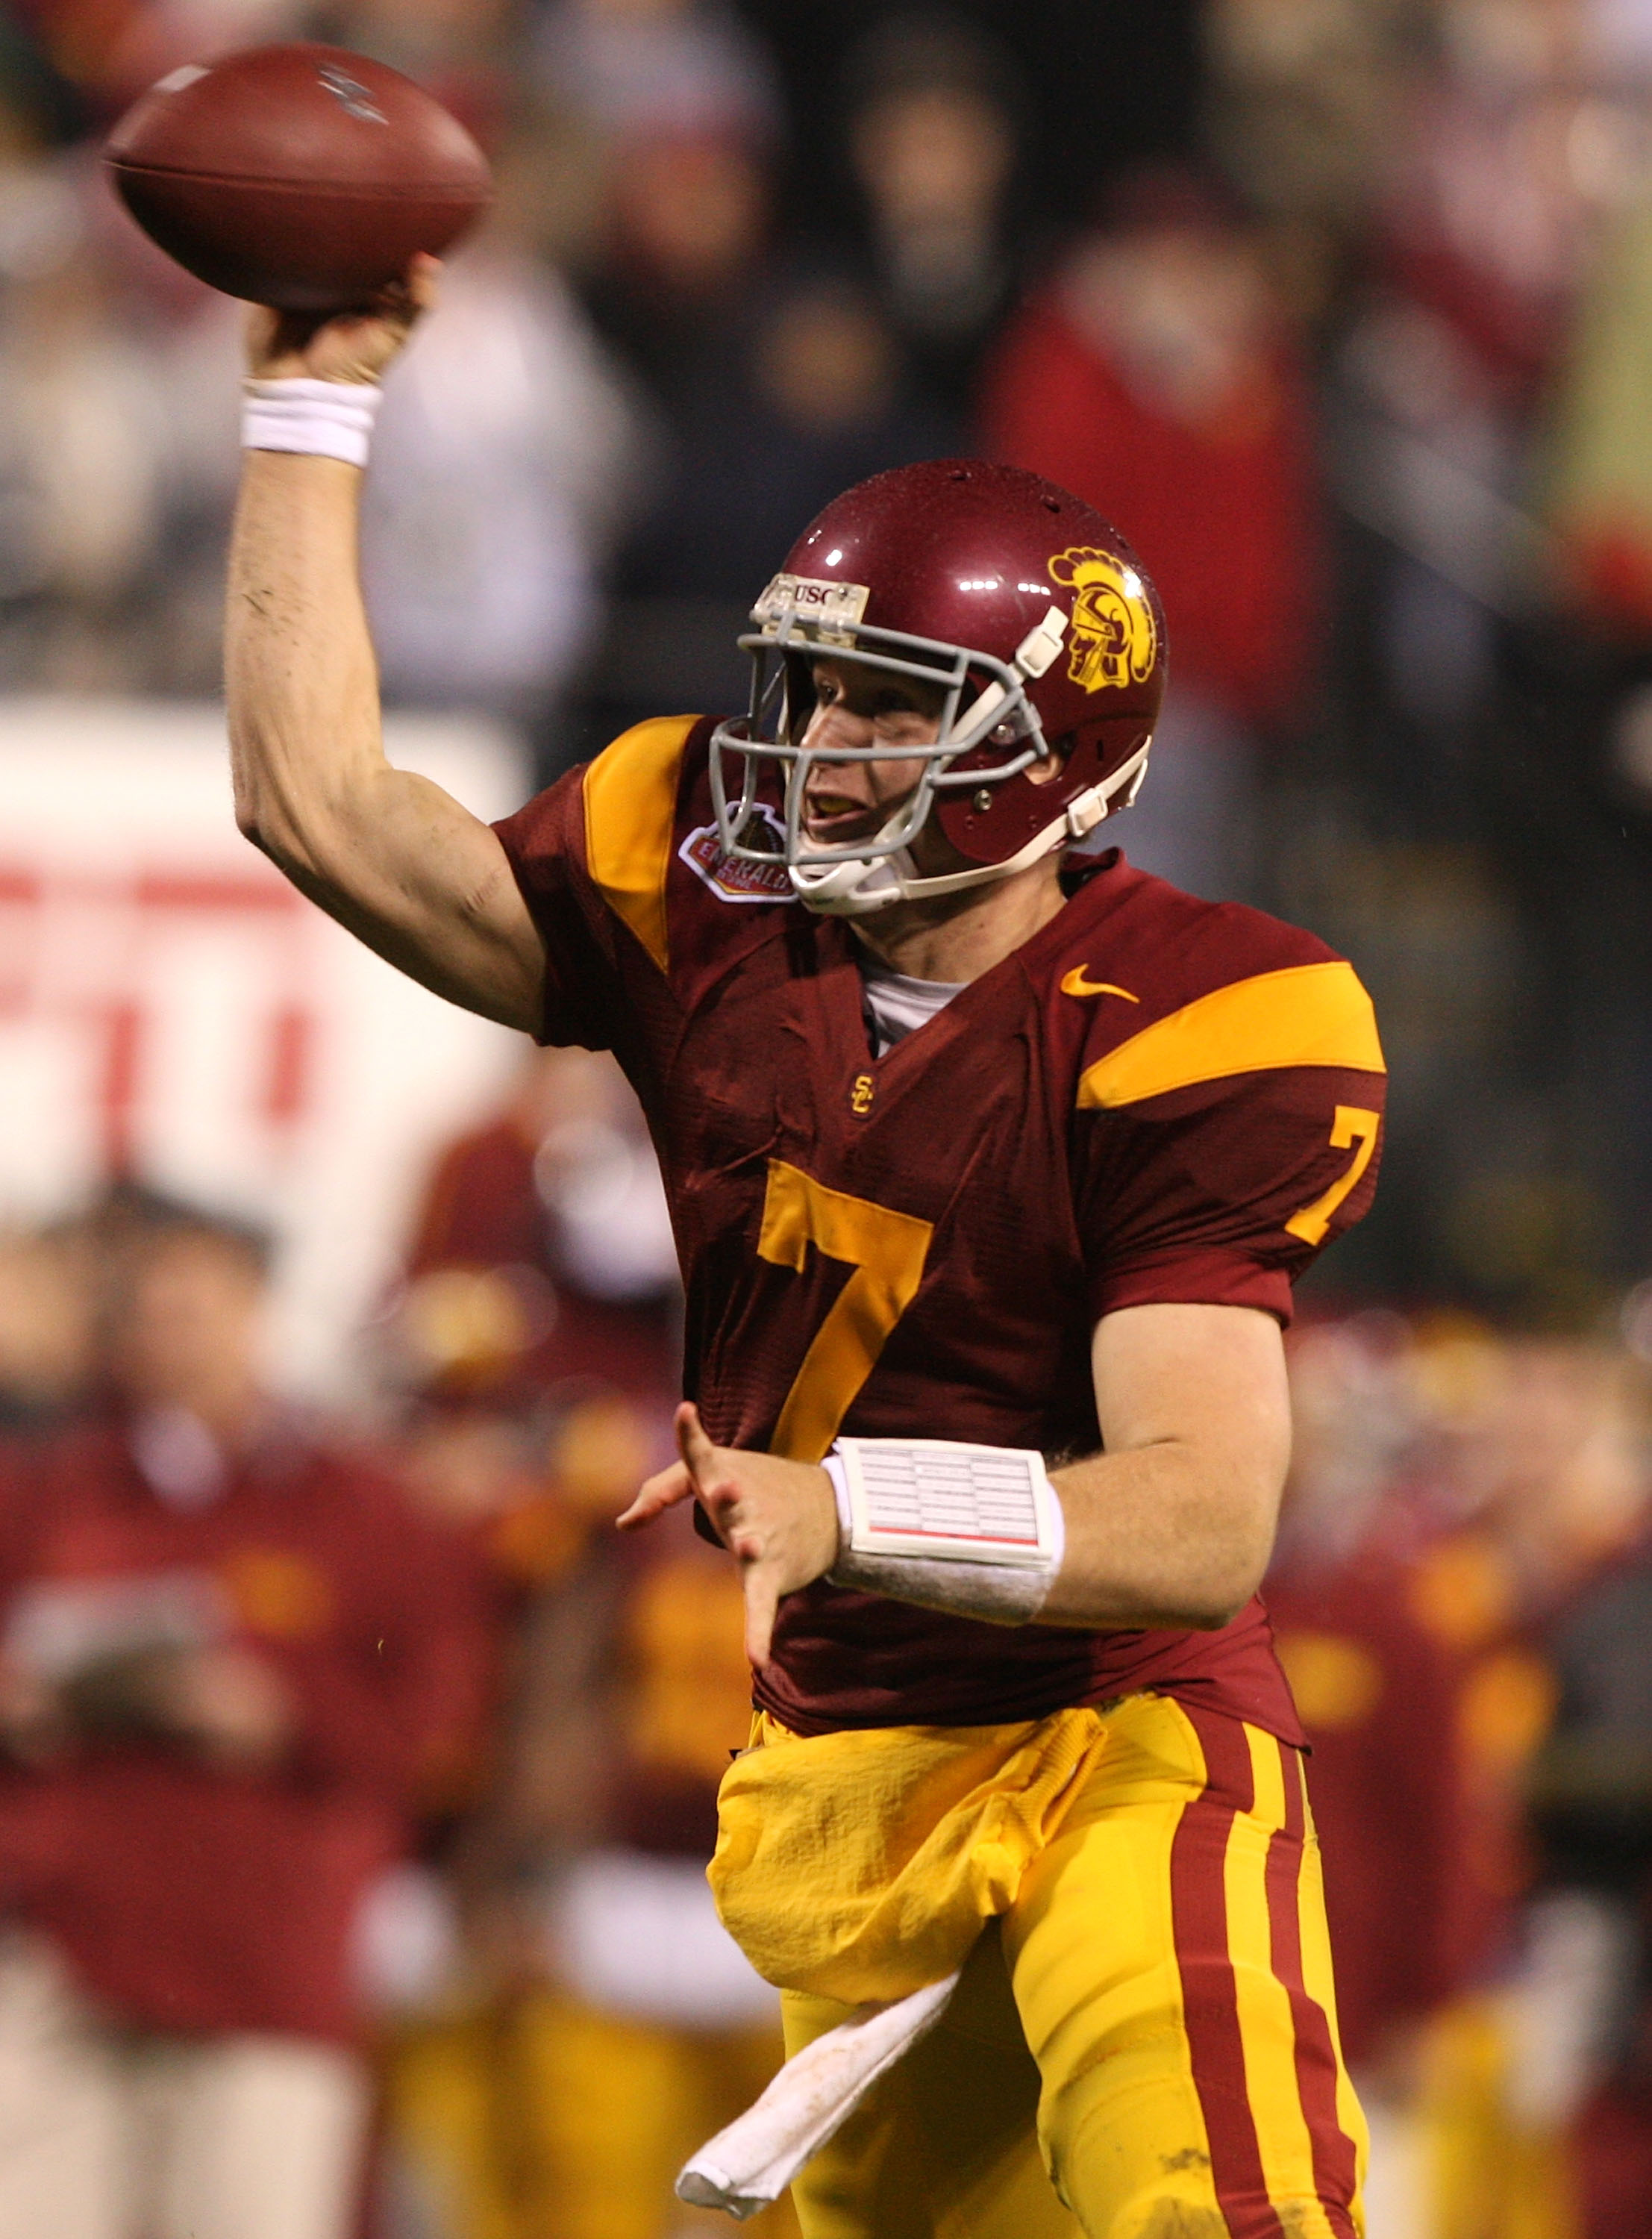 SAN FRANCISCO - DECEMBER 26: Matt Barkley #7 of the USC Trojans passes against the Boston College Eagles during the 2009 Emerald Bowl at AT&T Park on December 26, 2009 in San Francisco, California. (Photo by Jed Jacobsohn/Getty Images)